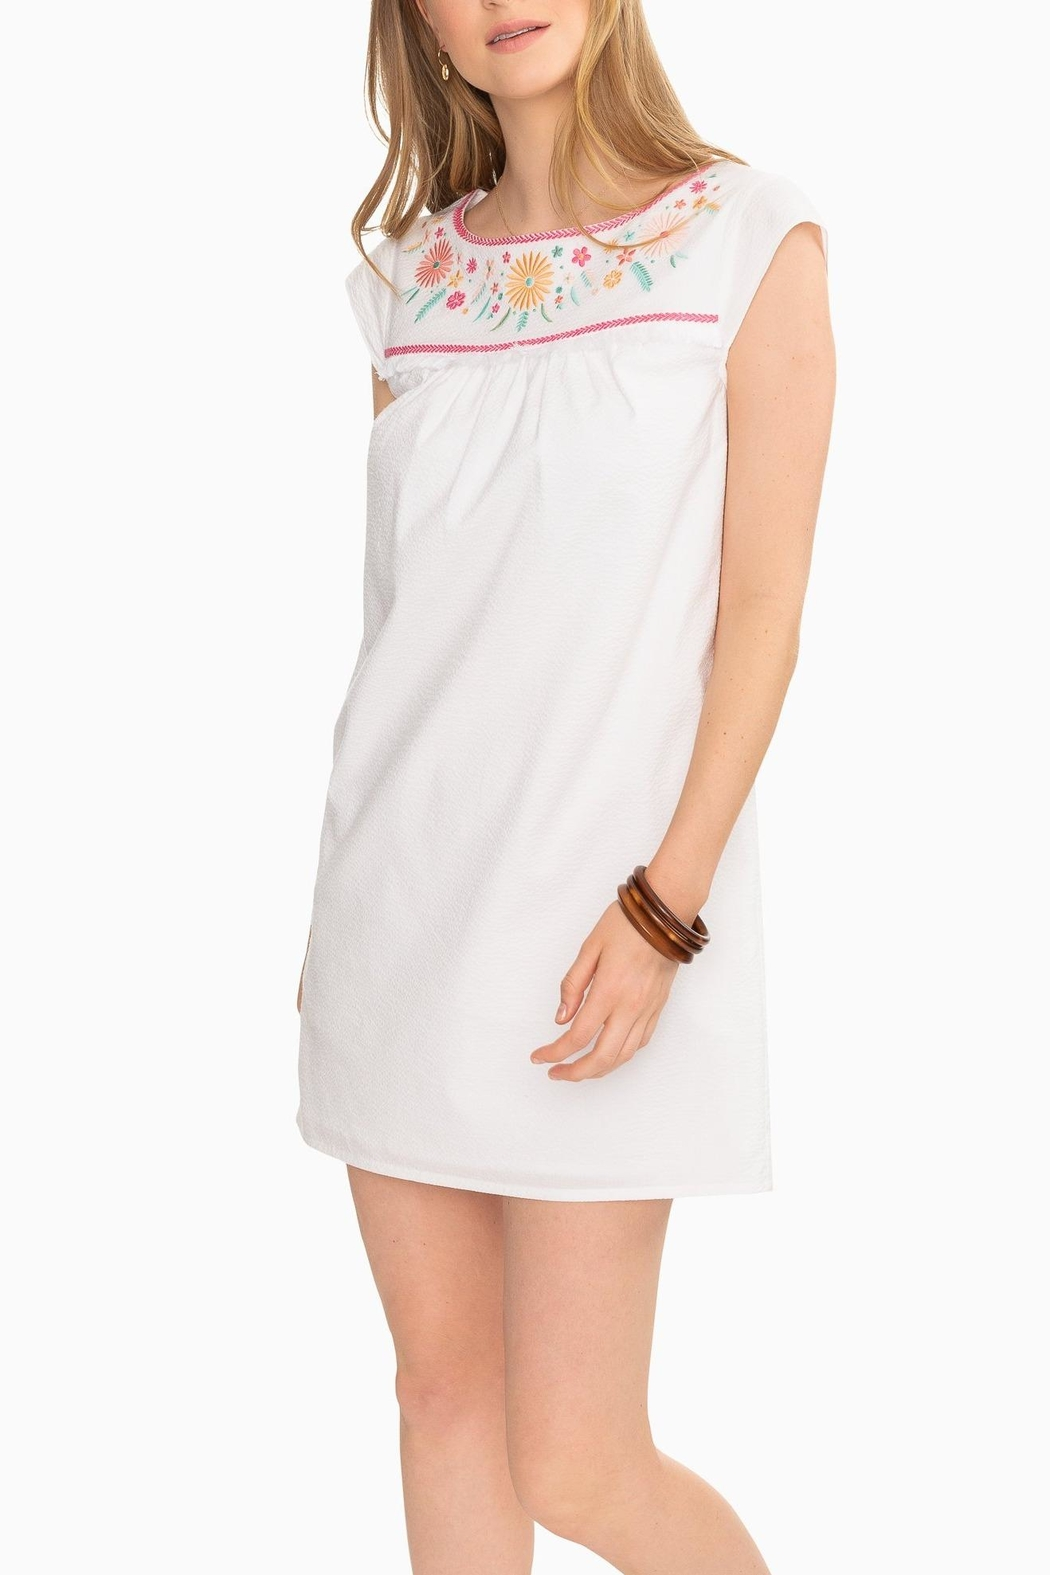 Southern Tide Sadie Embroidered Dress - Main Image